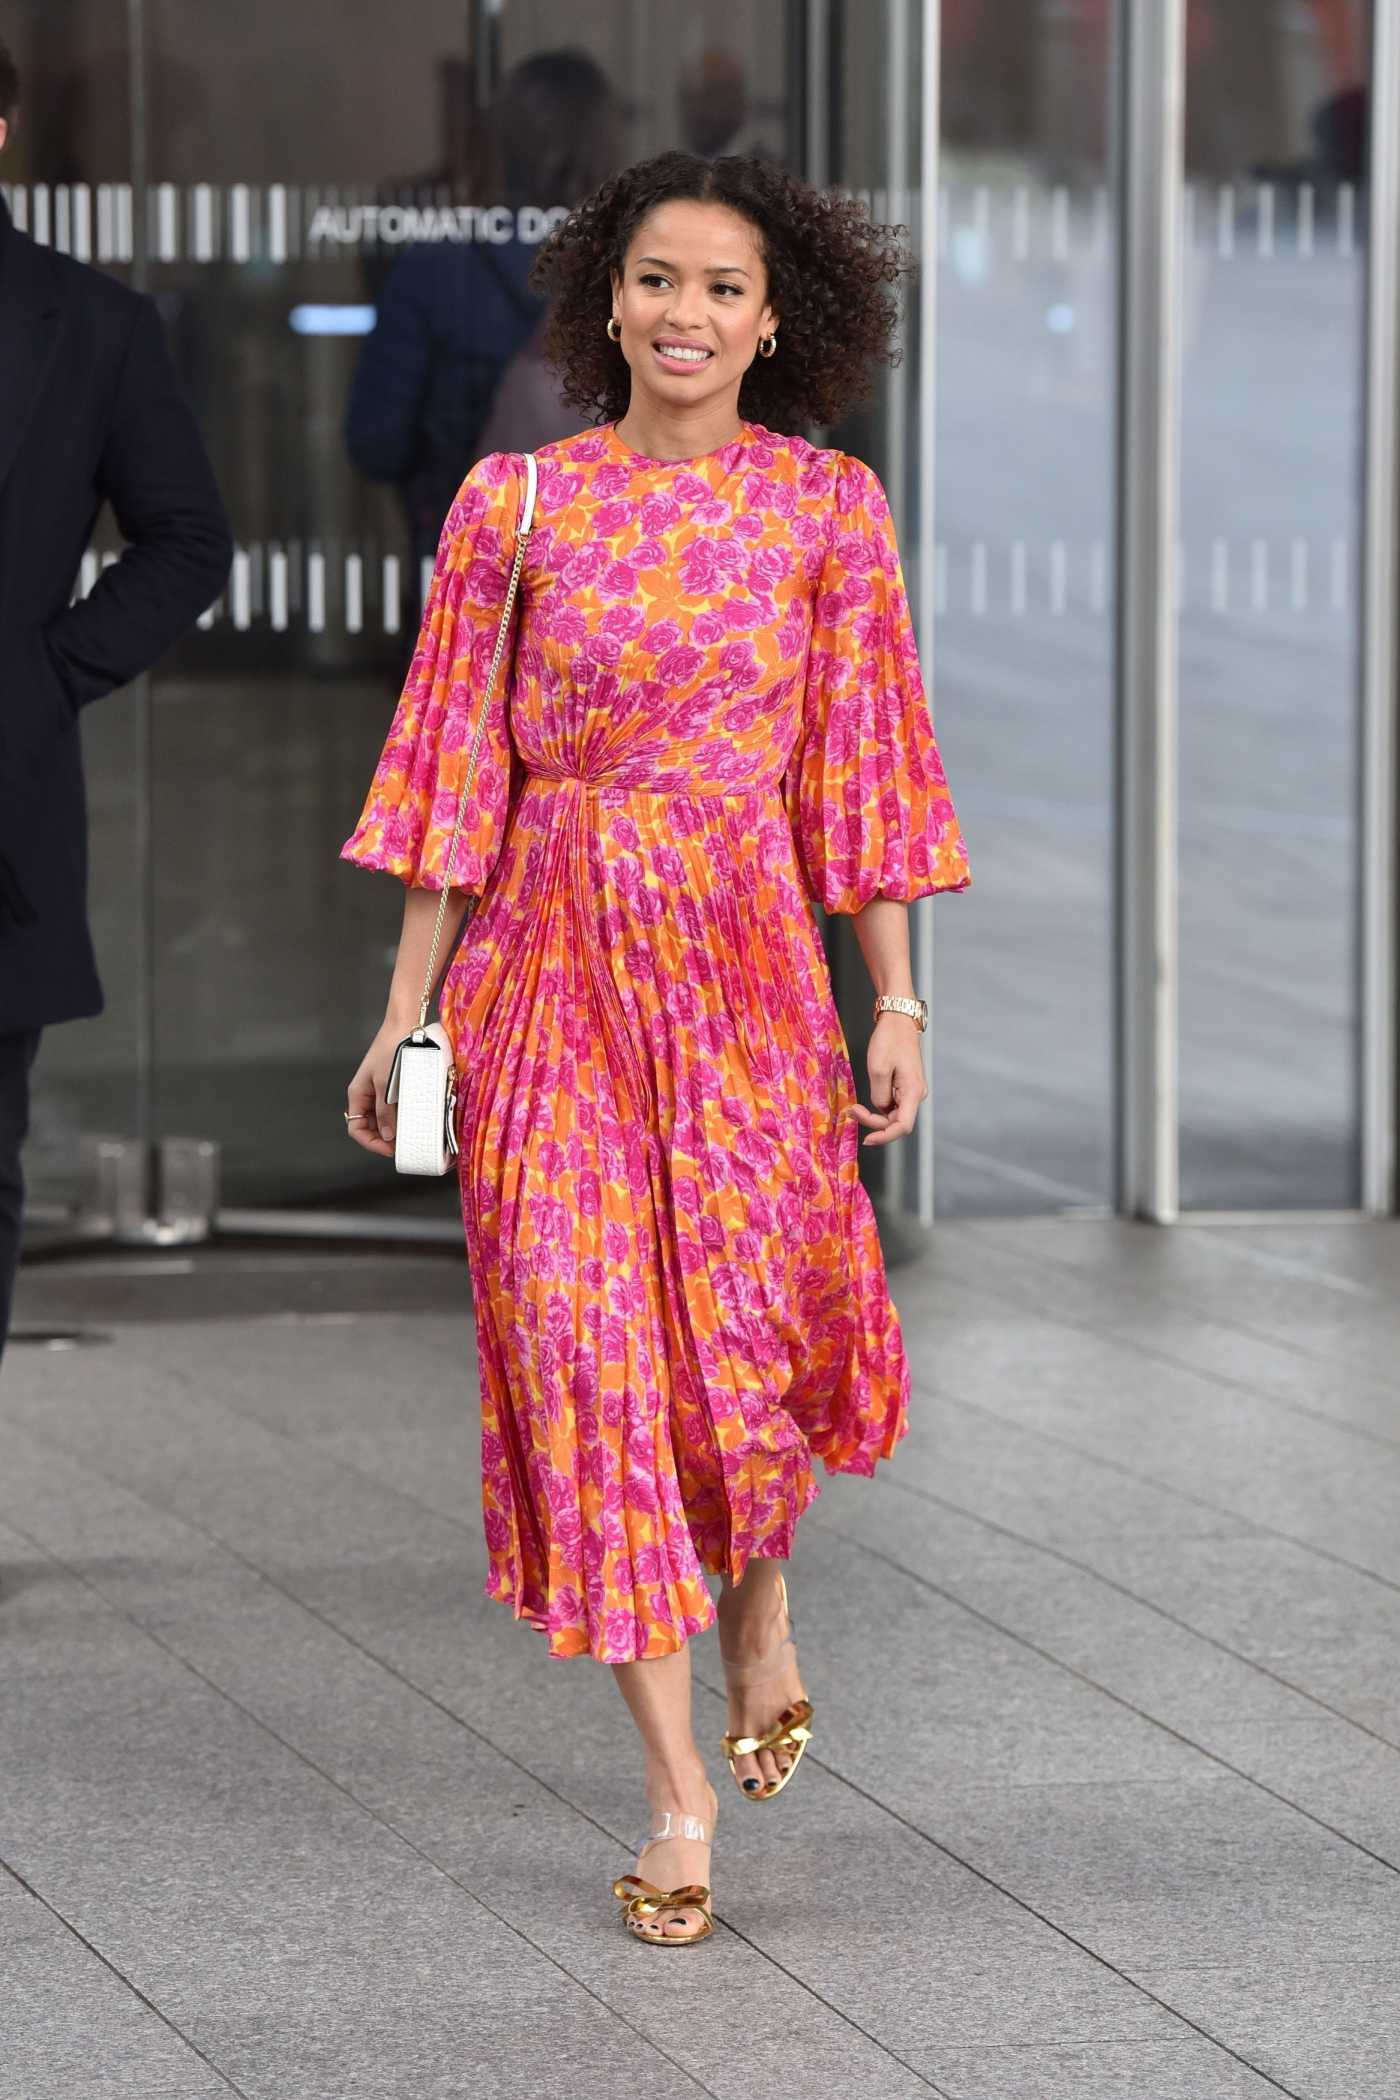 Gugu Mbatha-Raw in a Red Floral Dress Leaves the Chris Evans Show in London 03/06/2020